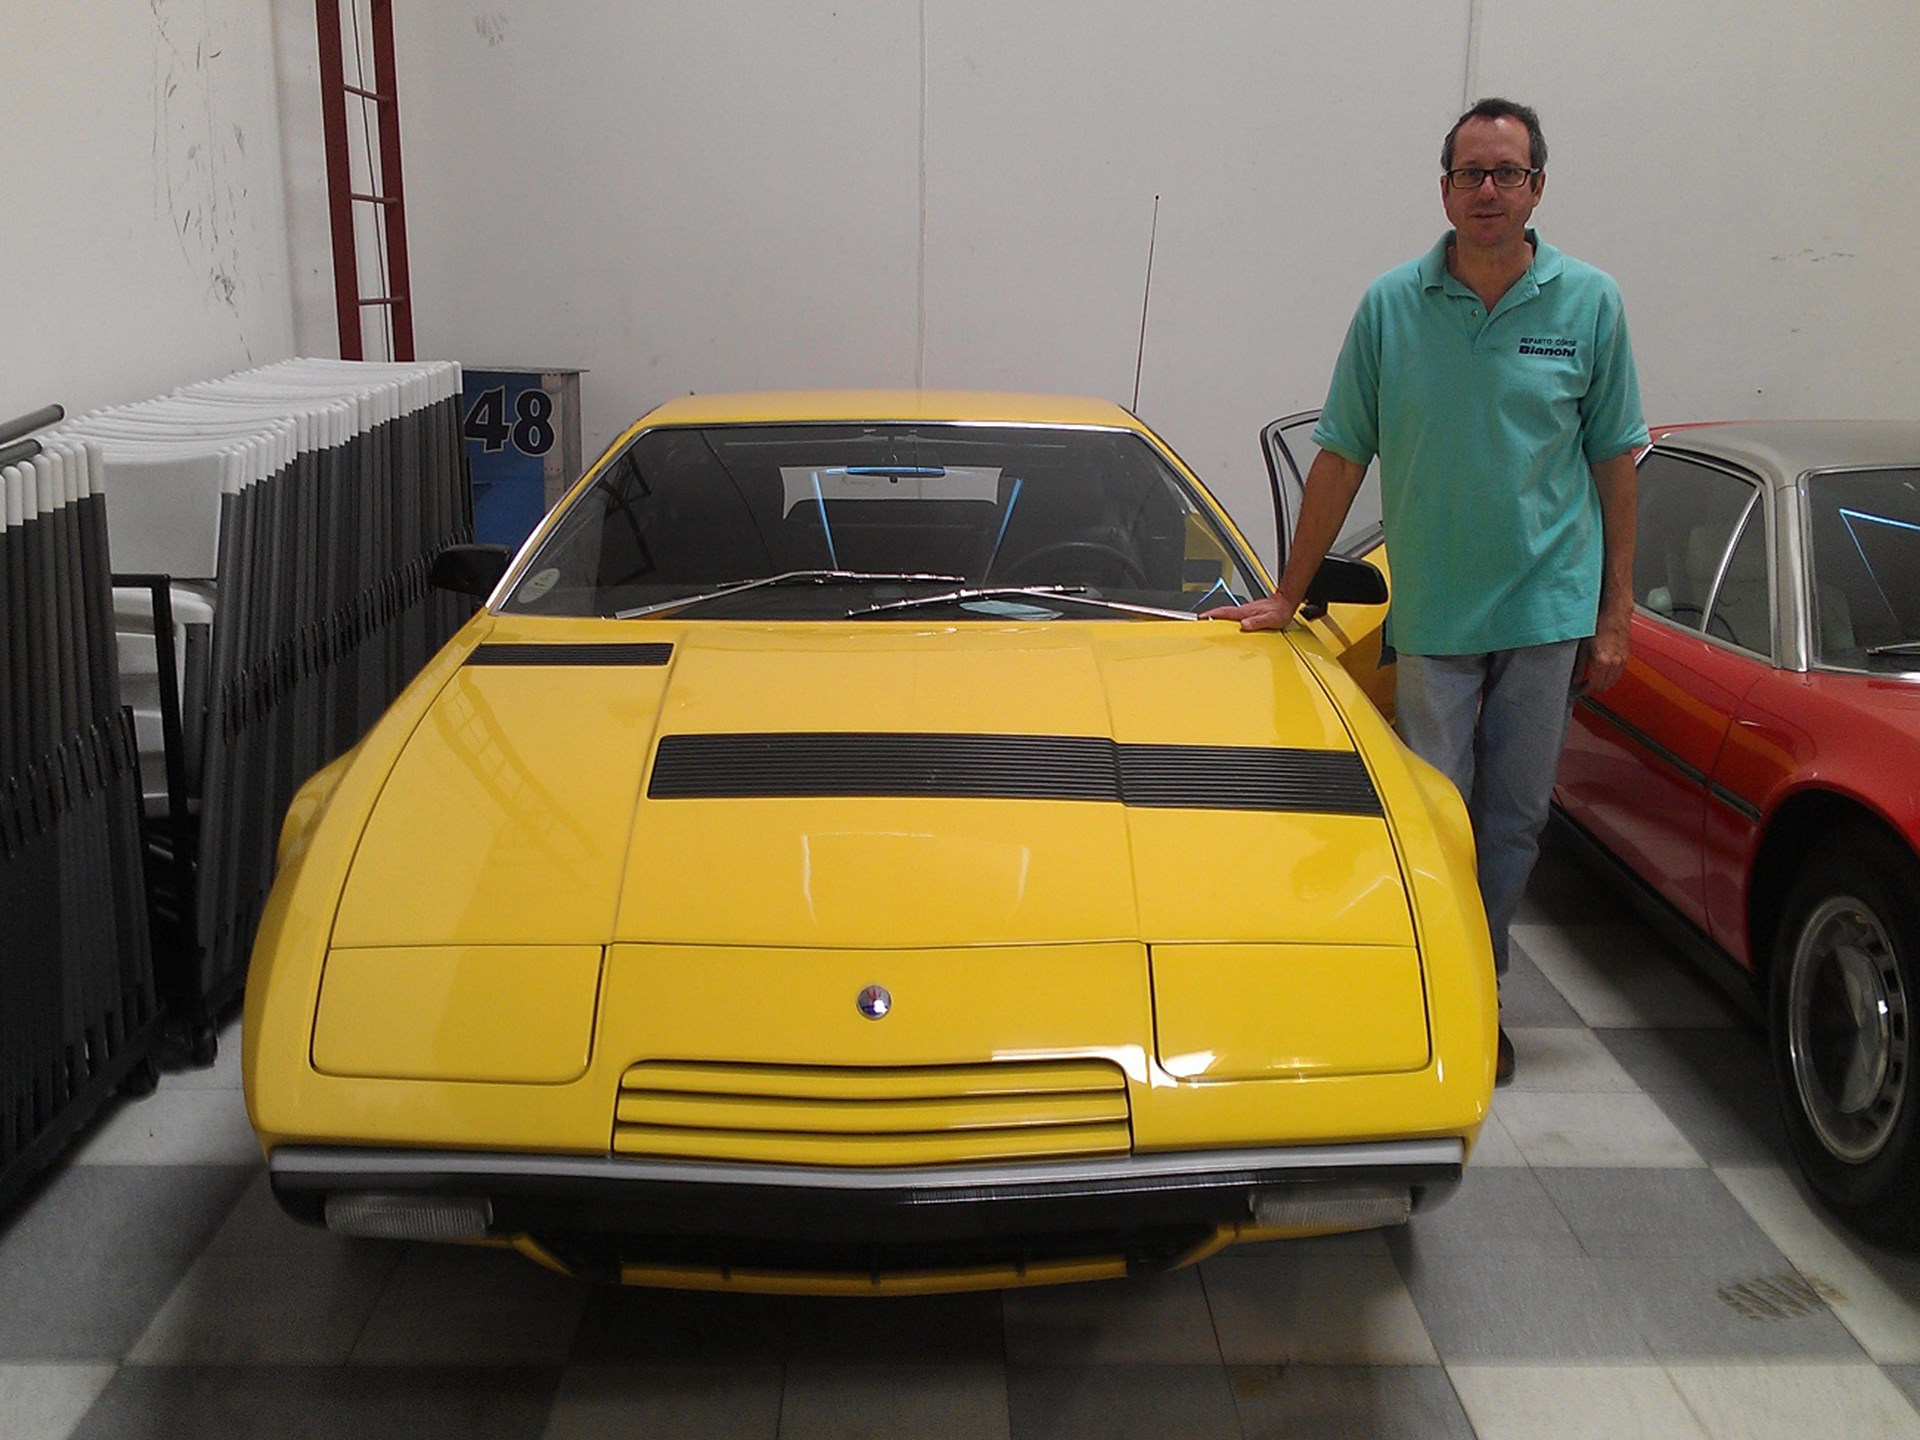 Doug Magnon pictured with his Maserati Khamsin in the Riverside International Automobile Museum in April of 2013.